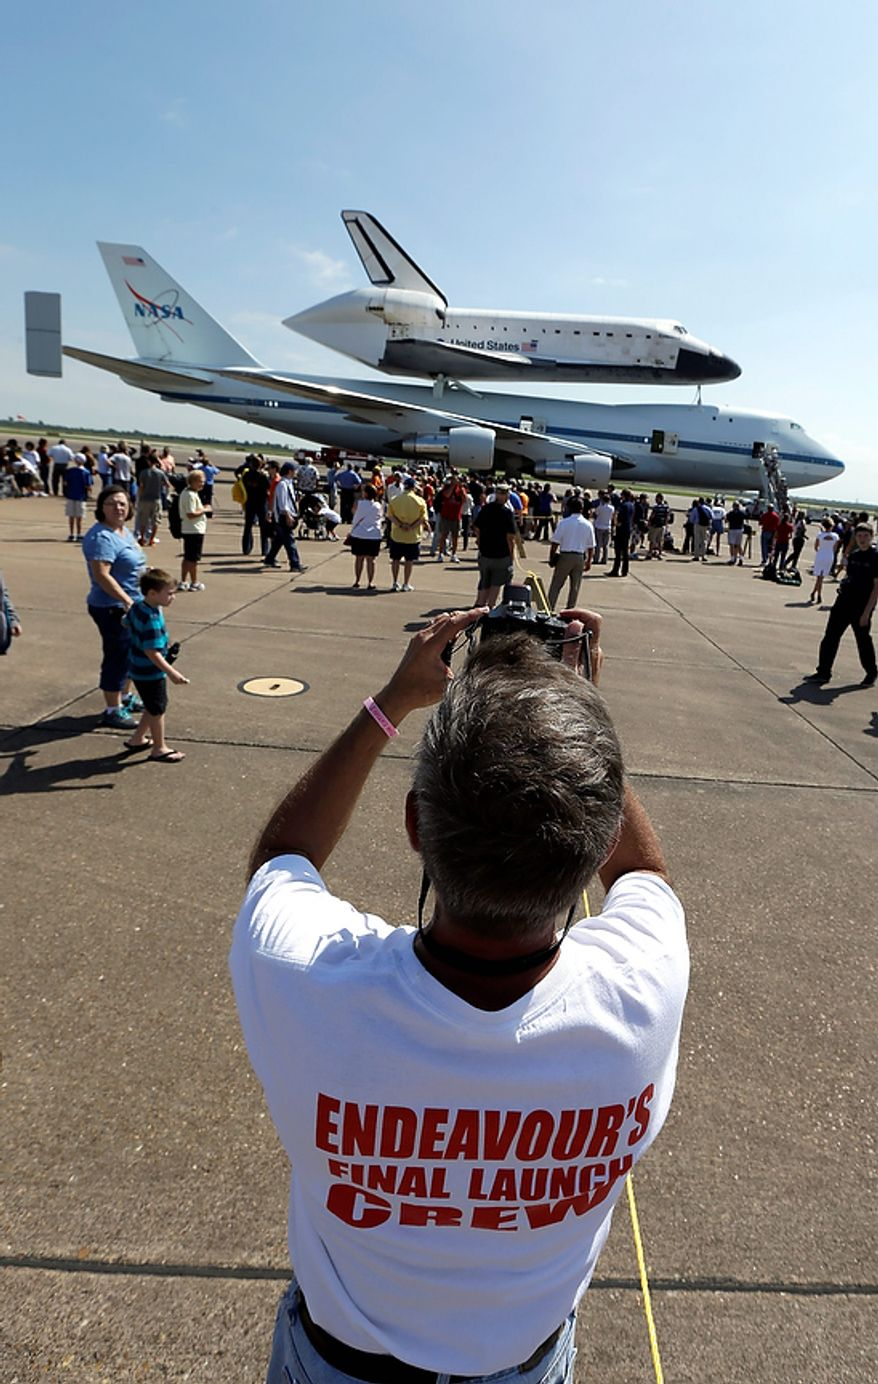 Scott Rush photographs space shuttle Endeavour as it atop the shuttle aircraft carrier after landing Wednesday, Sept. 19, 2012, at Ellington Field in Houston. Endeavour is making a final trek across the country to the California Science Center in Los Angeles, where it will be permanently displayed. (AP Photo/David J. Phillip